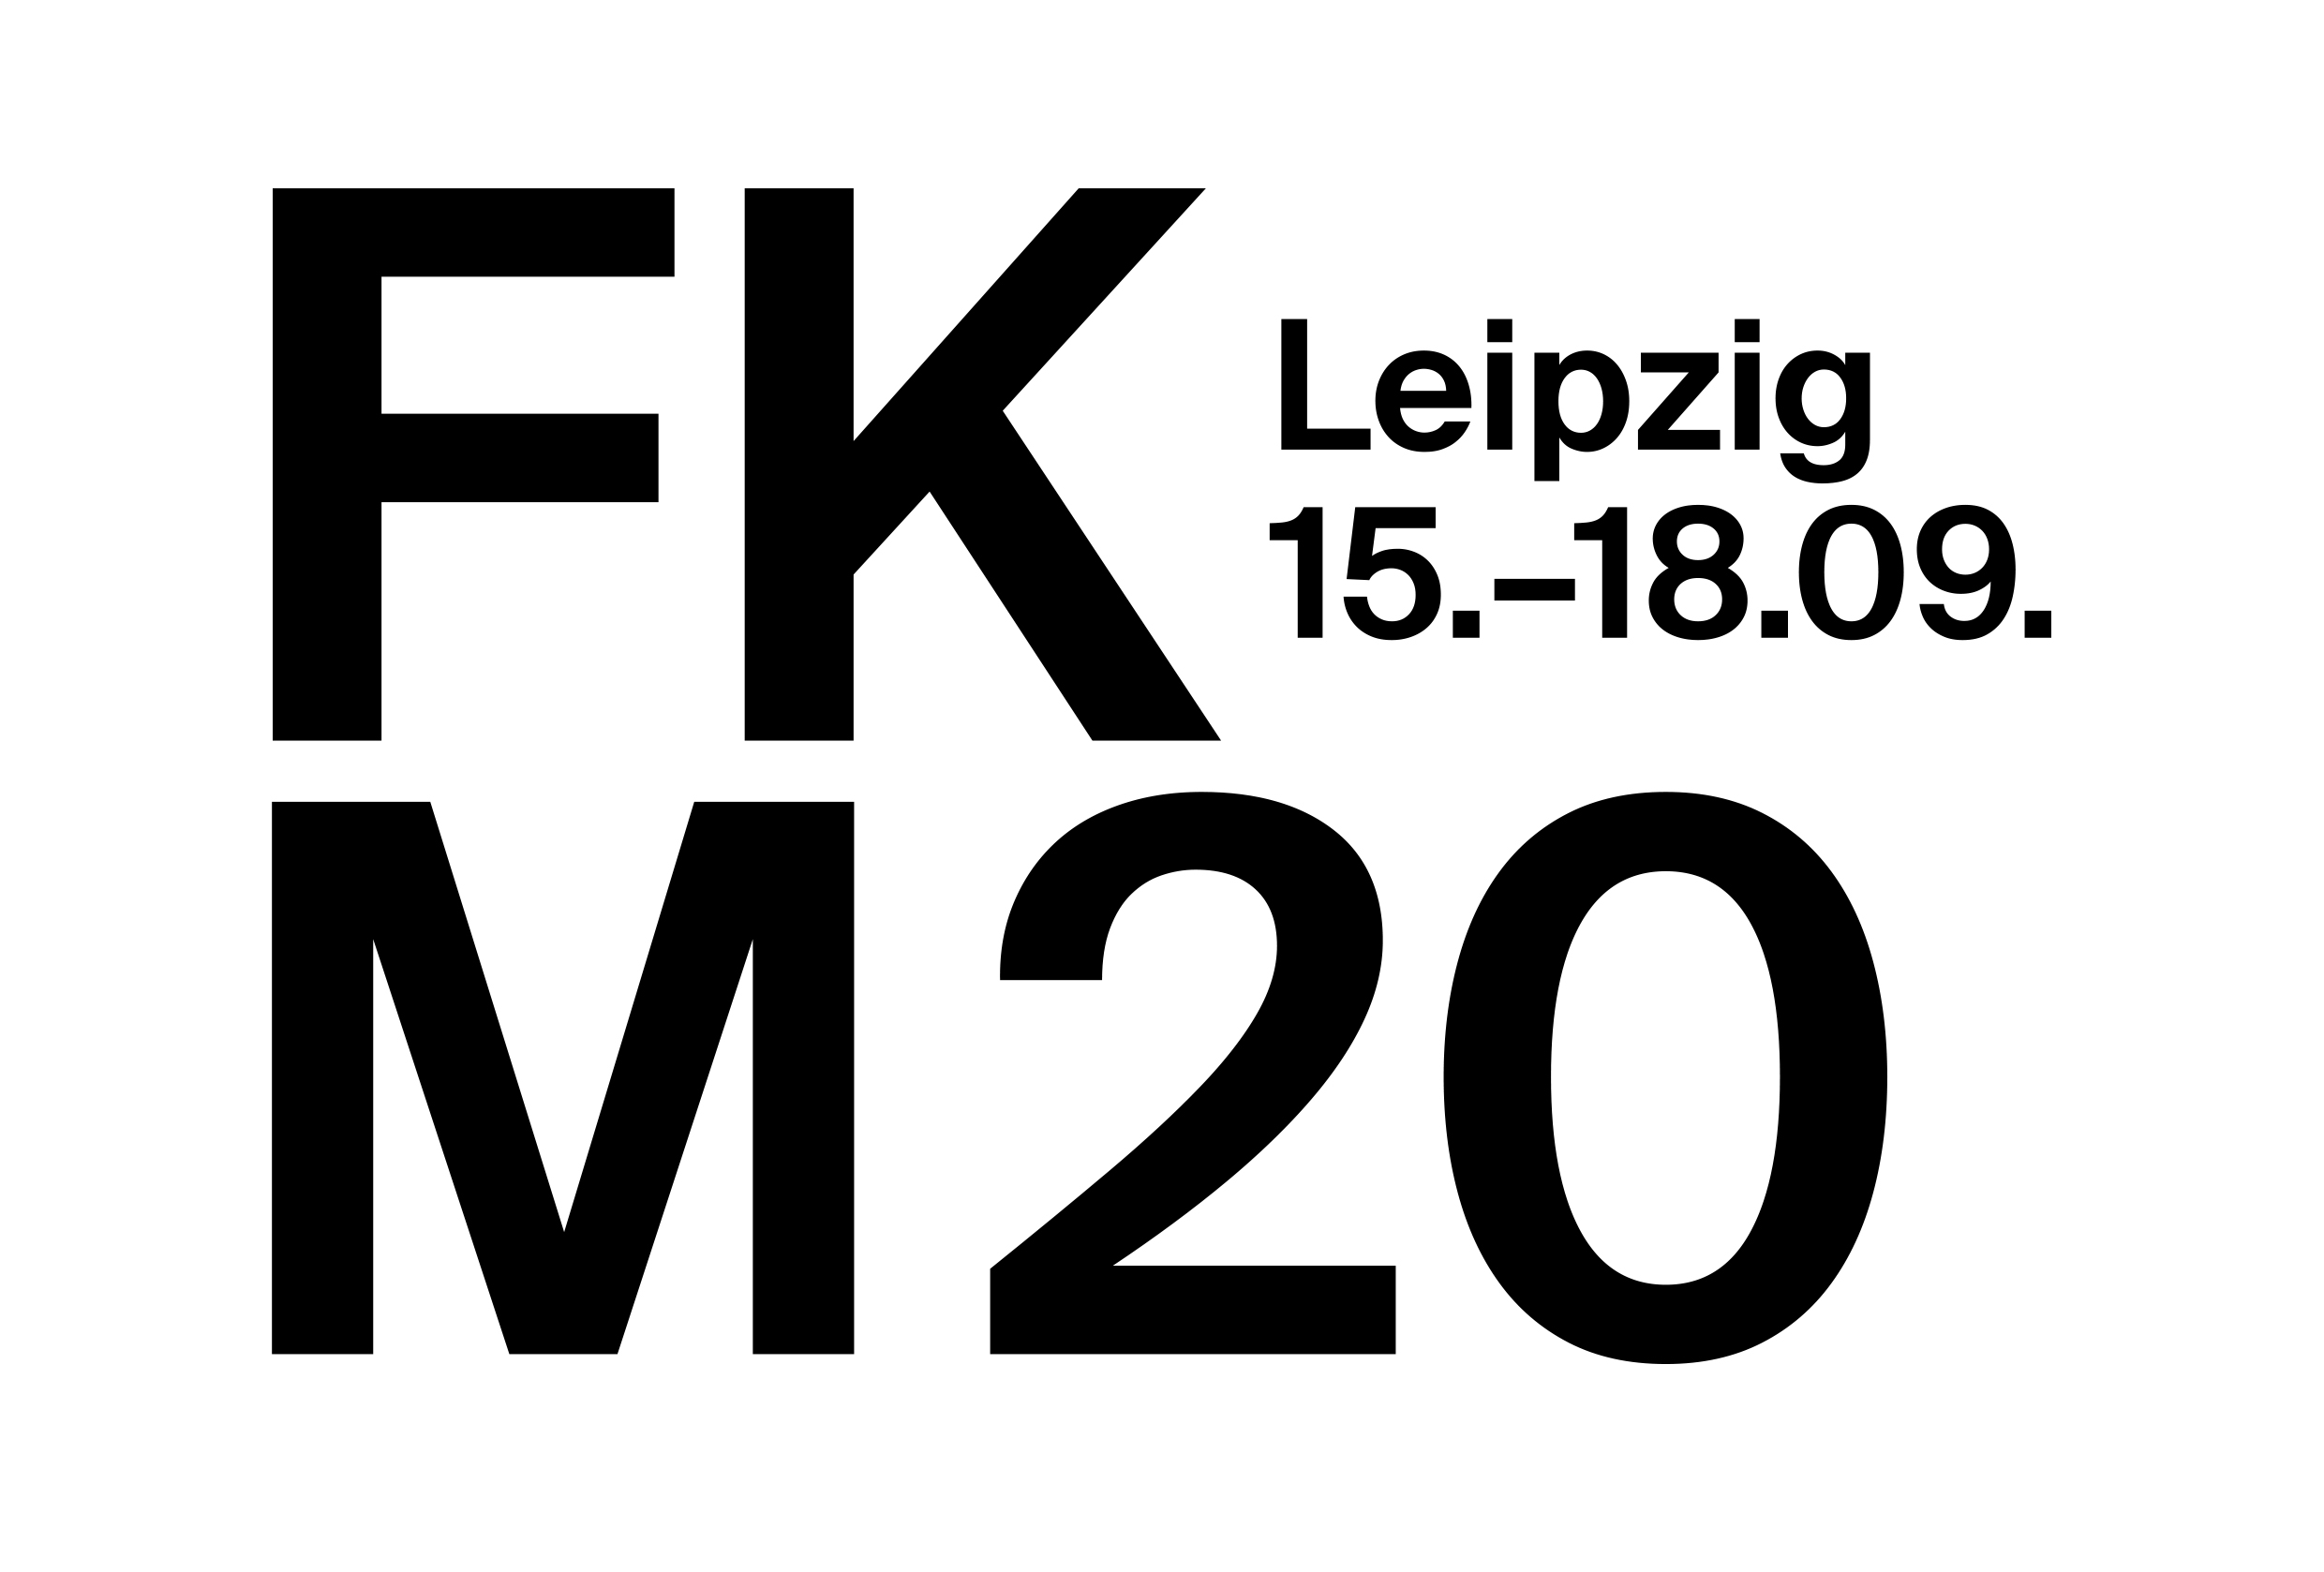 Filmkunstmesse Leipzig 2020 wird leicht verschoben: 15. bis 18.09.2020